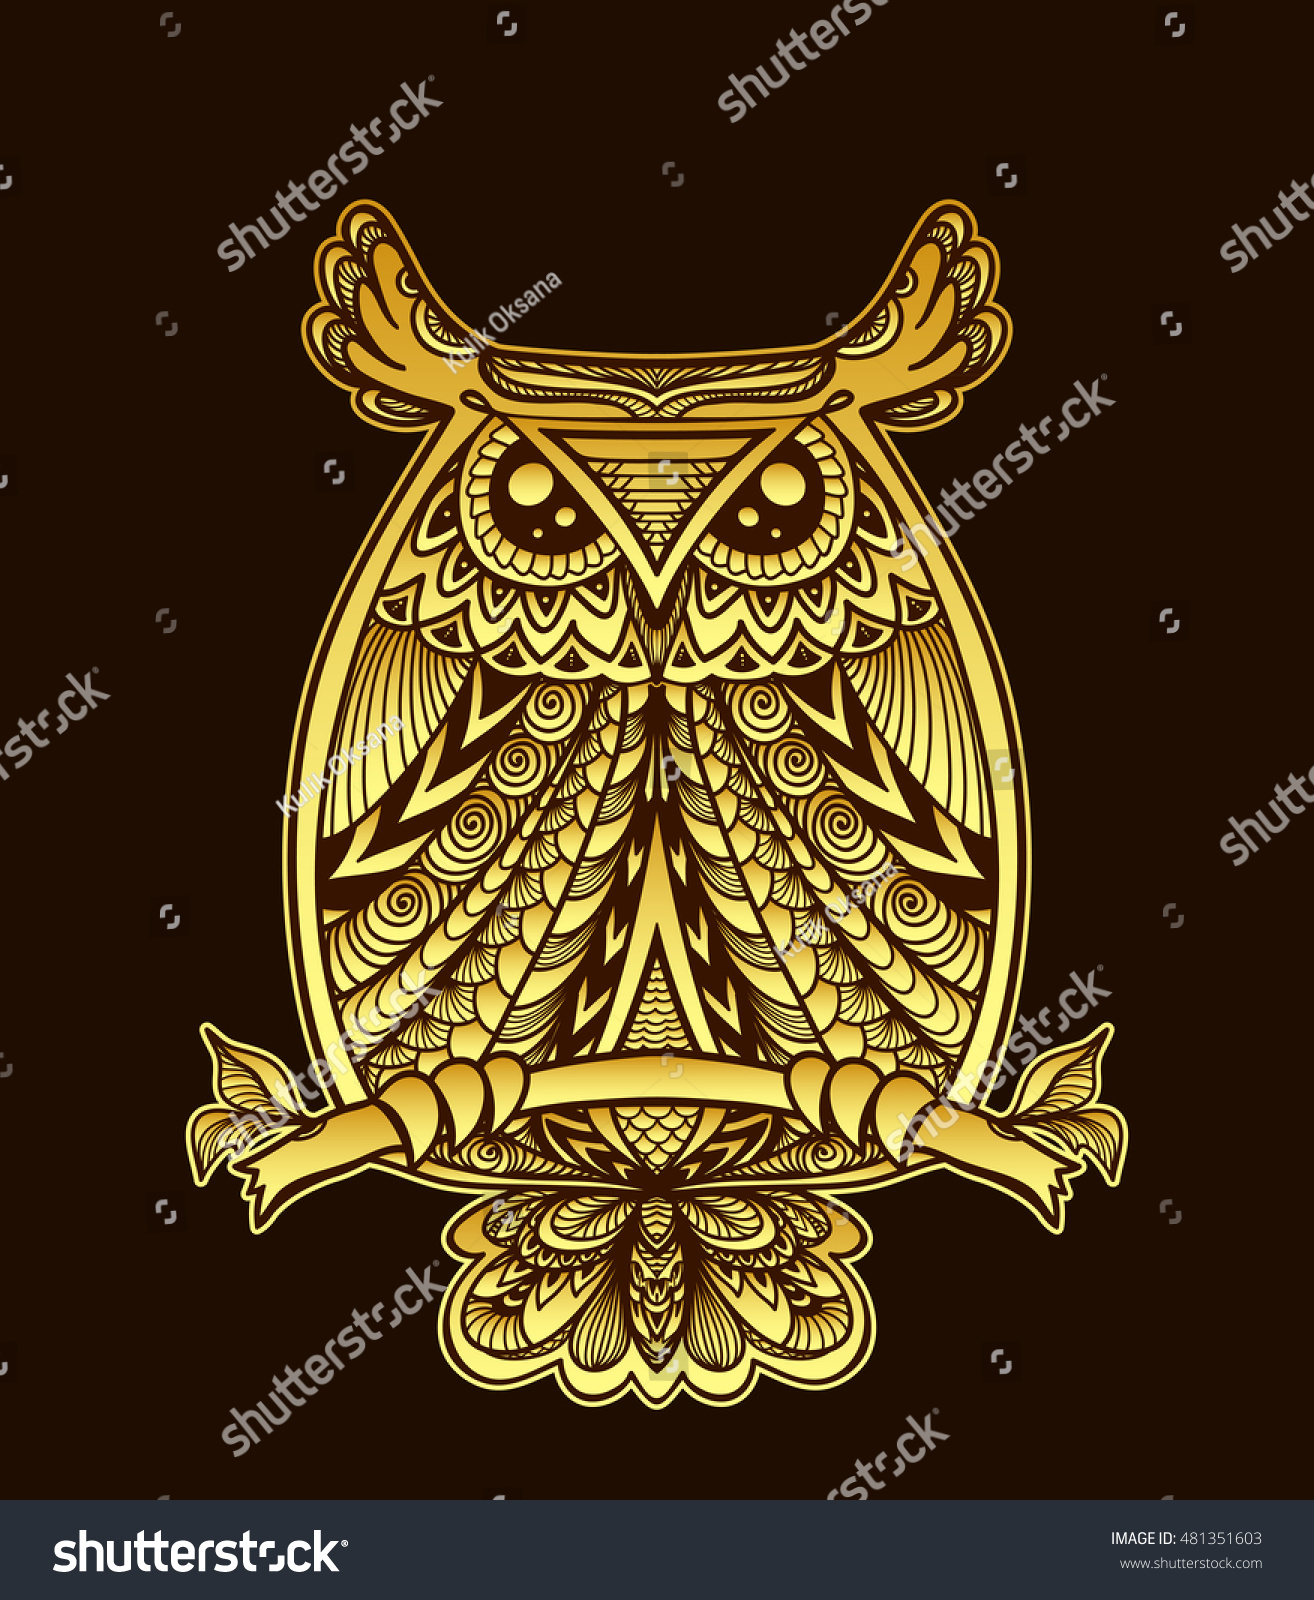 Cool Wallpaper Halloween Gold - stock-vector-owl-in-zen-doodle-or-zen-tangle-decorative-style-handmade-gold-on-black-for-halloween-or-for-481351603  Image_4818.jpg